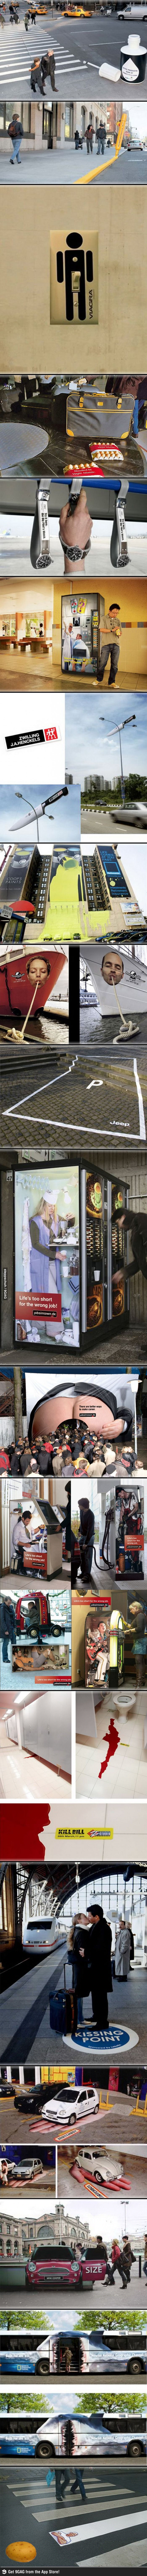 Advertising done right